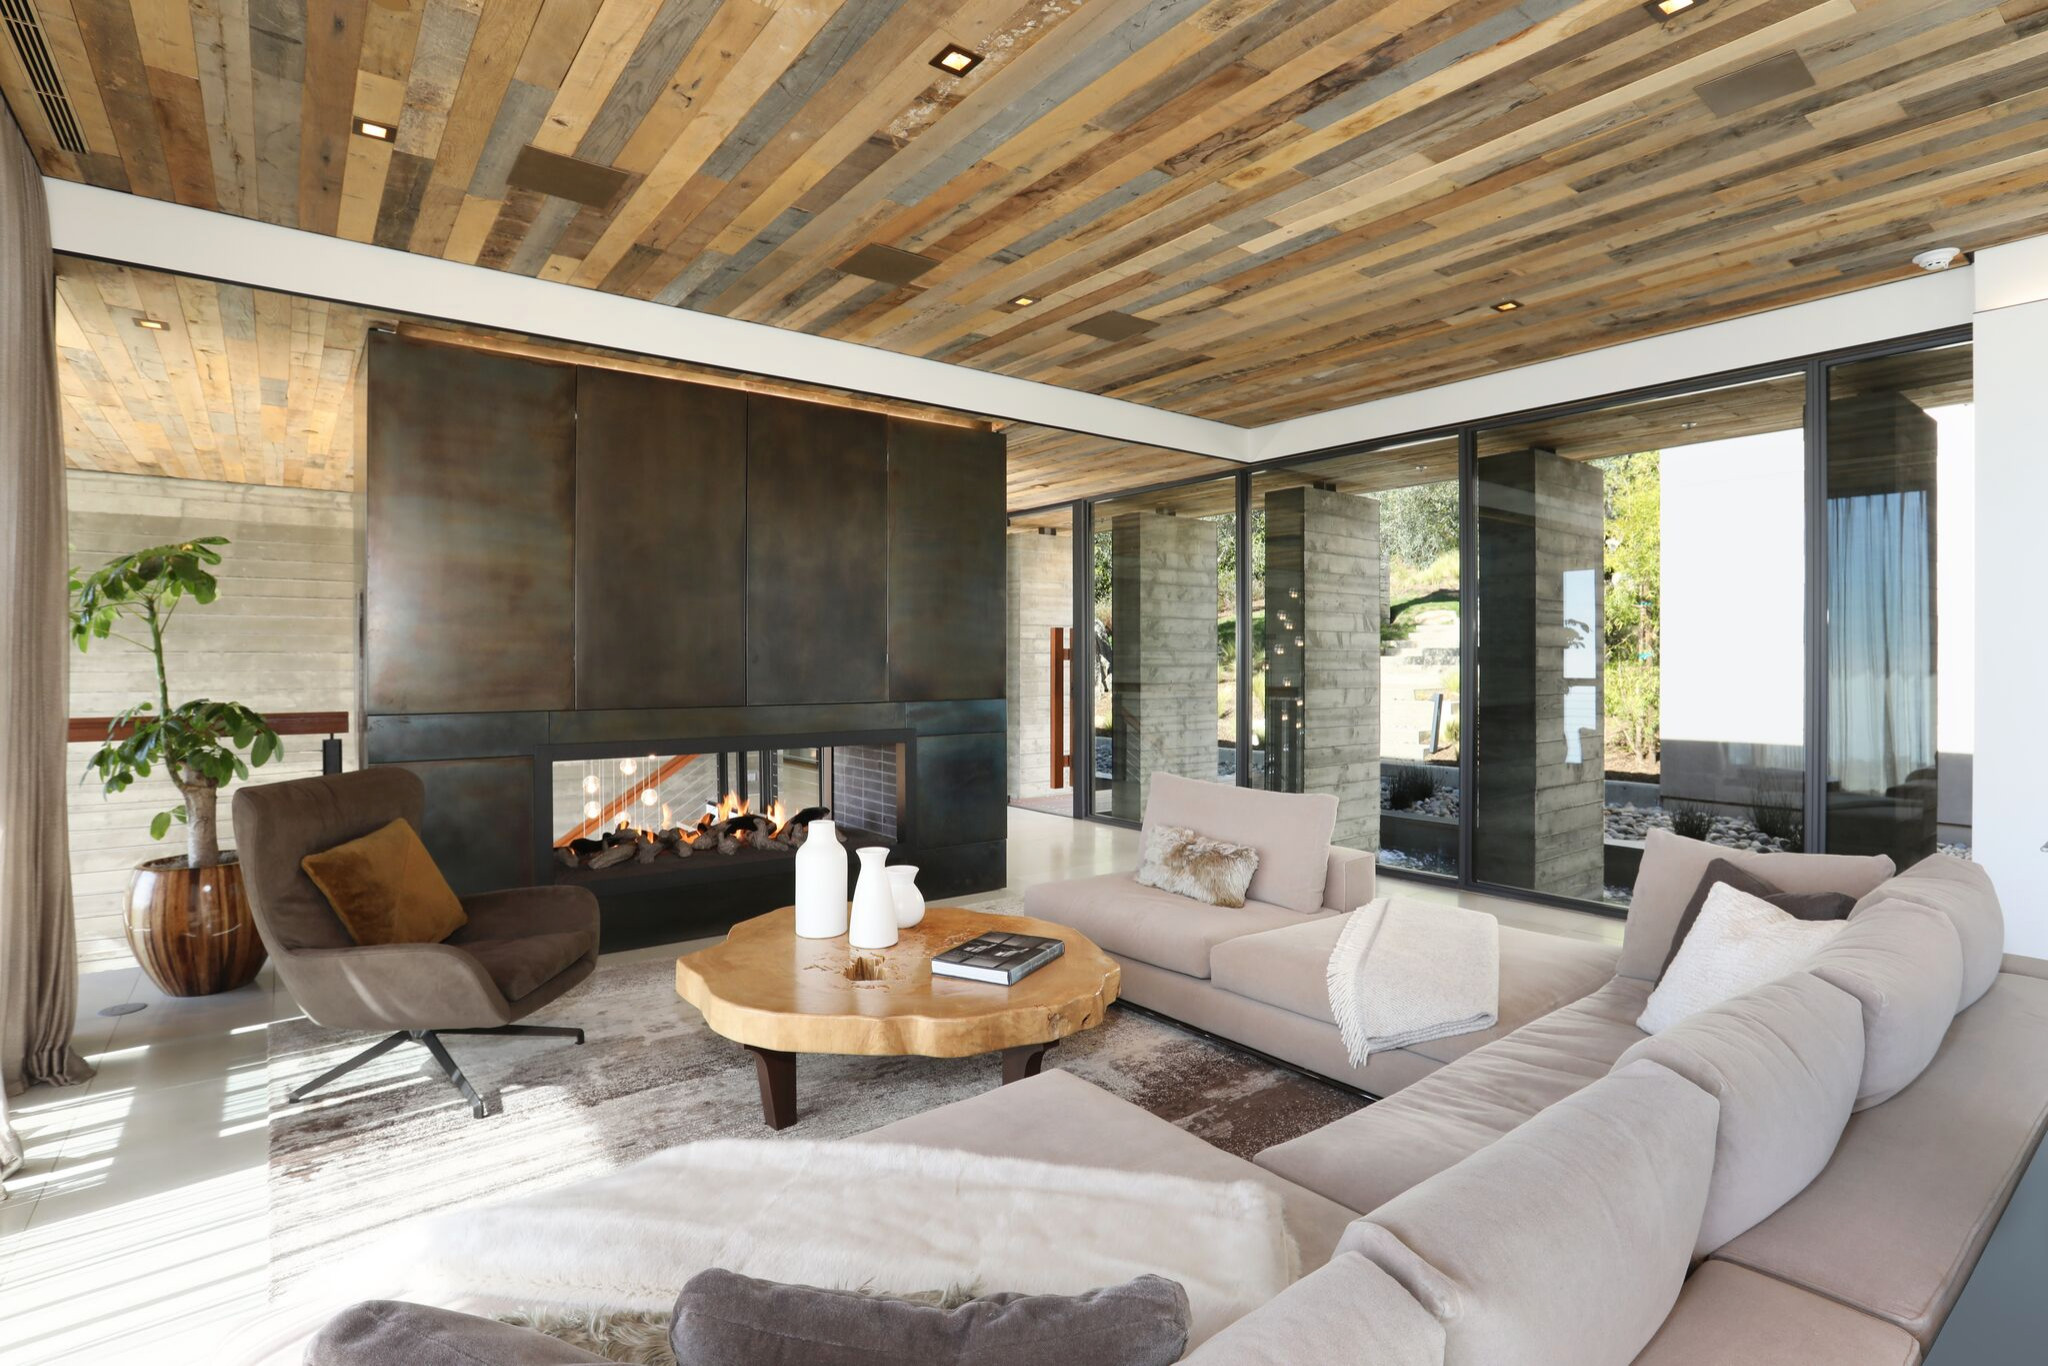 75 Beautiful Living Room With A Media Wall Pictures Ideas February 2021 Houzz